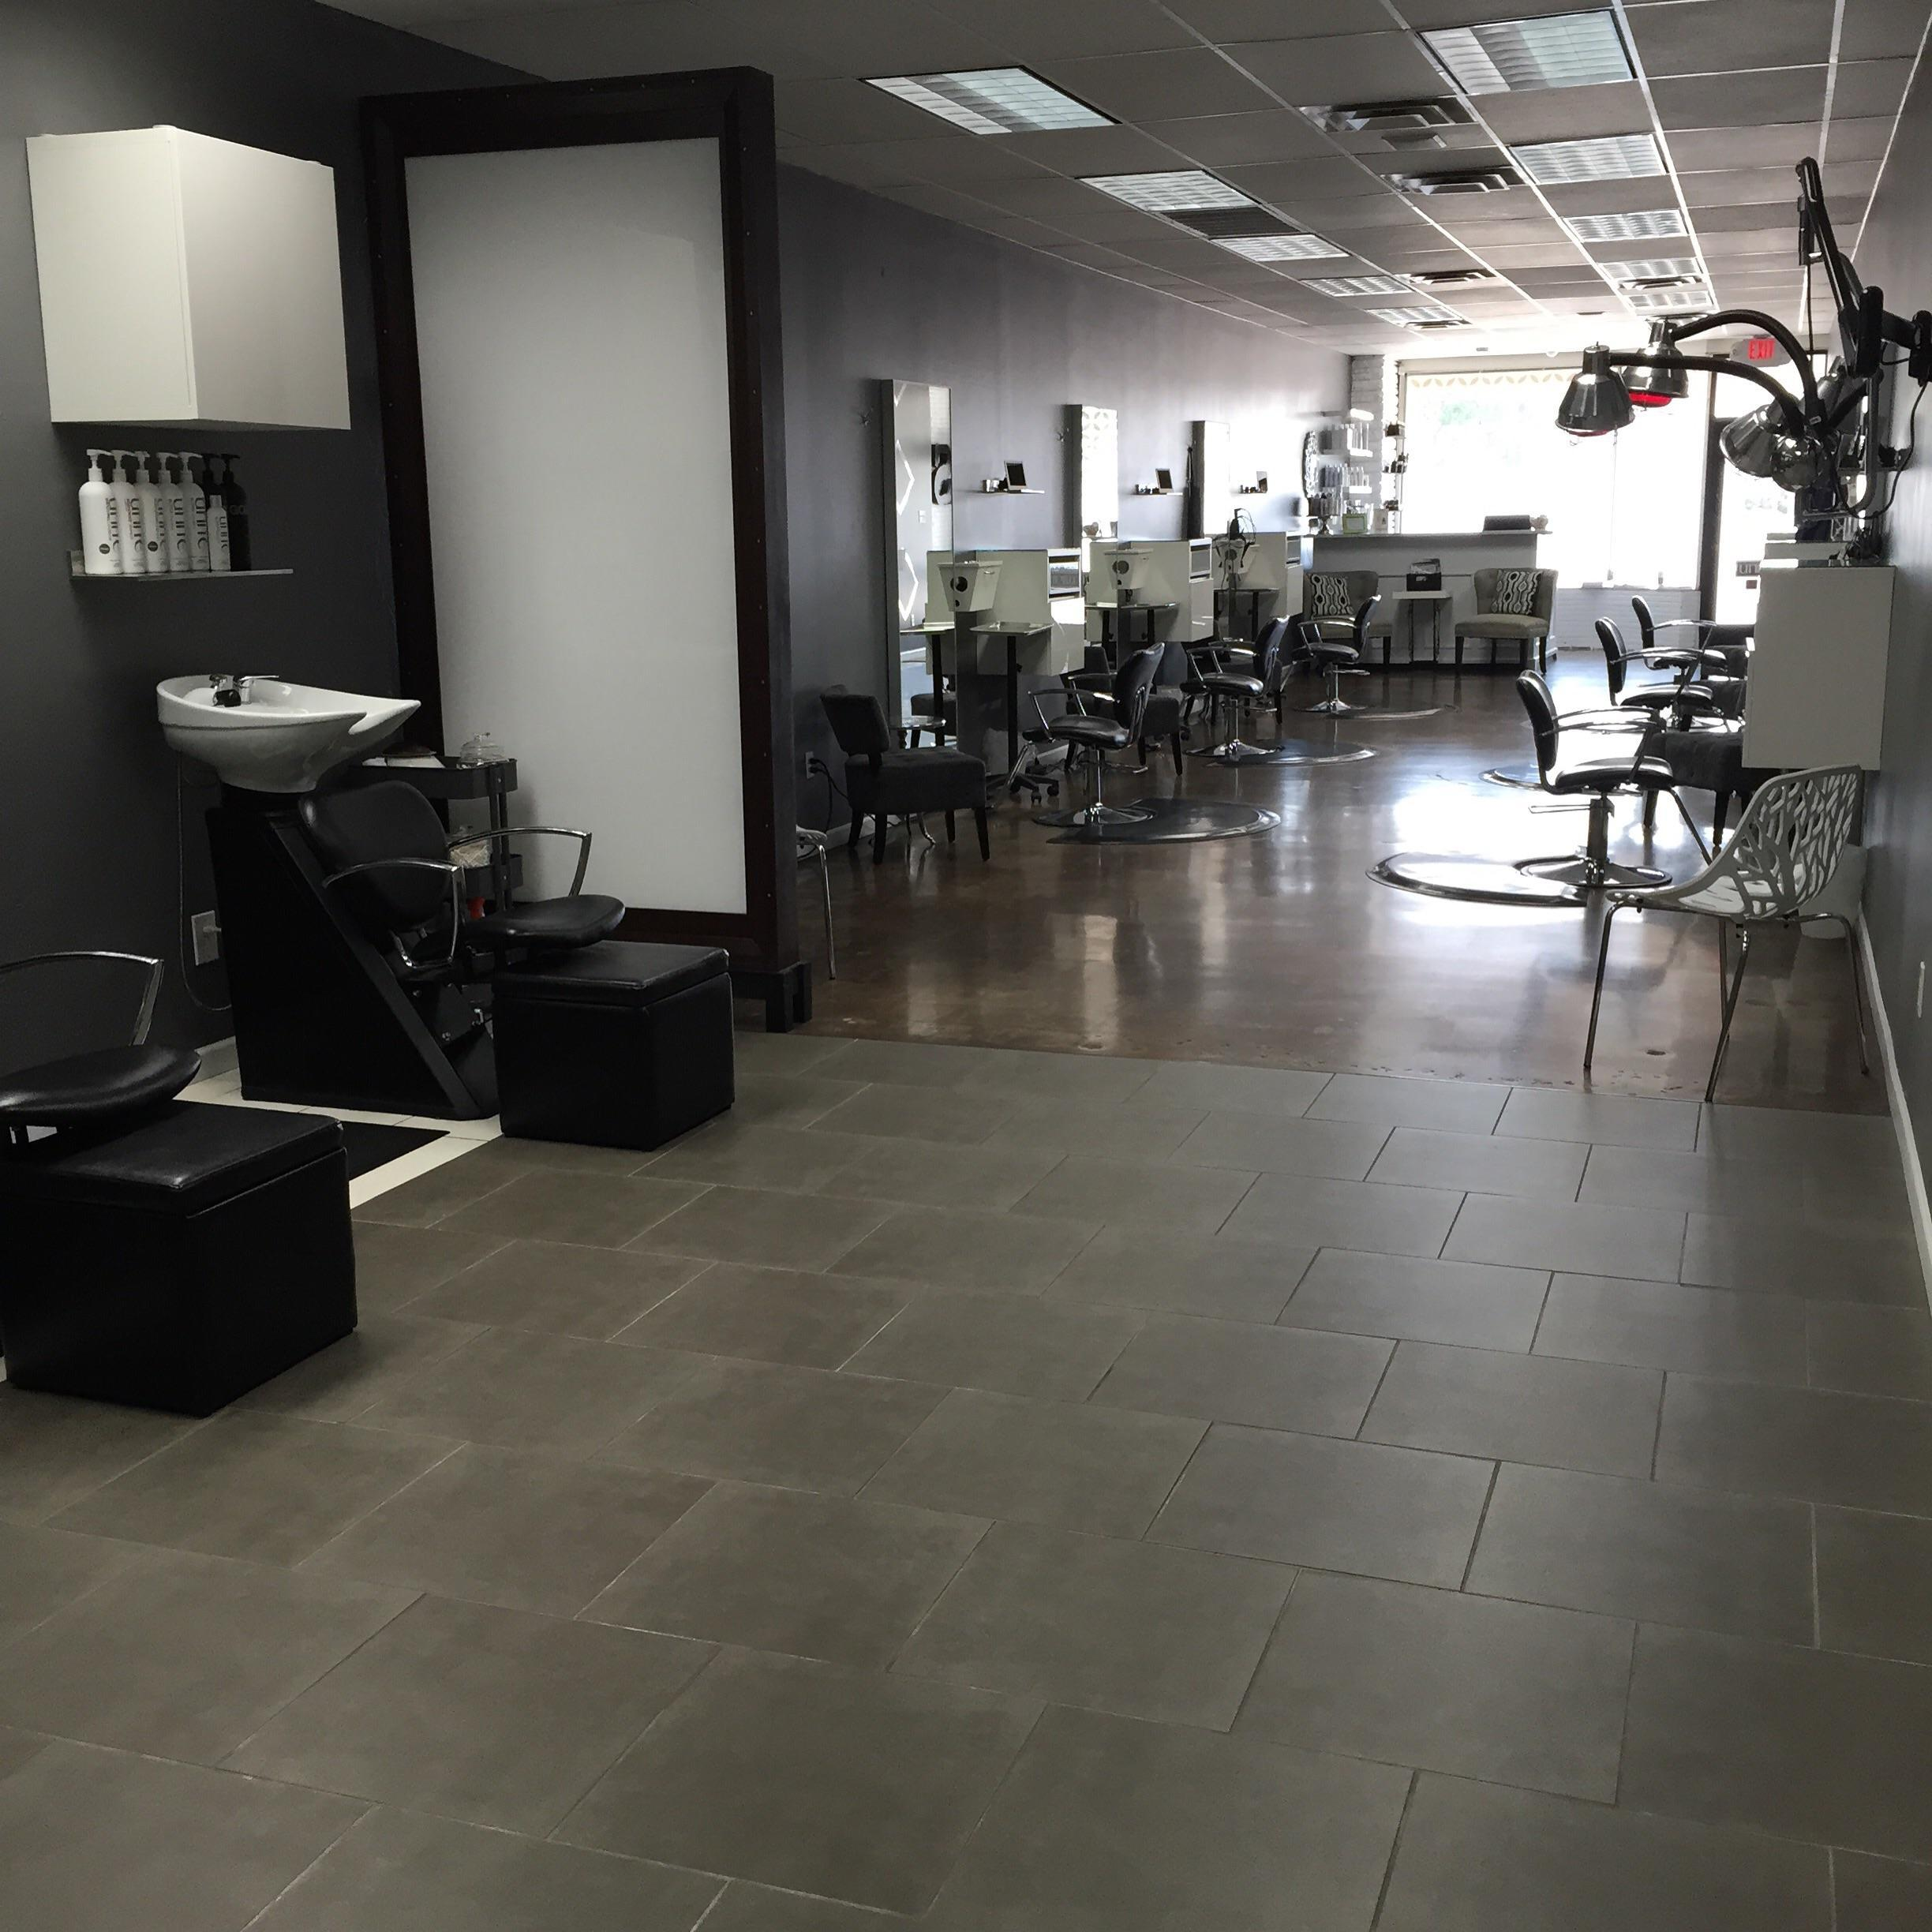 salon 9309 in oklahoma city ok 73120